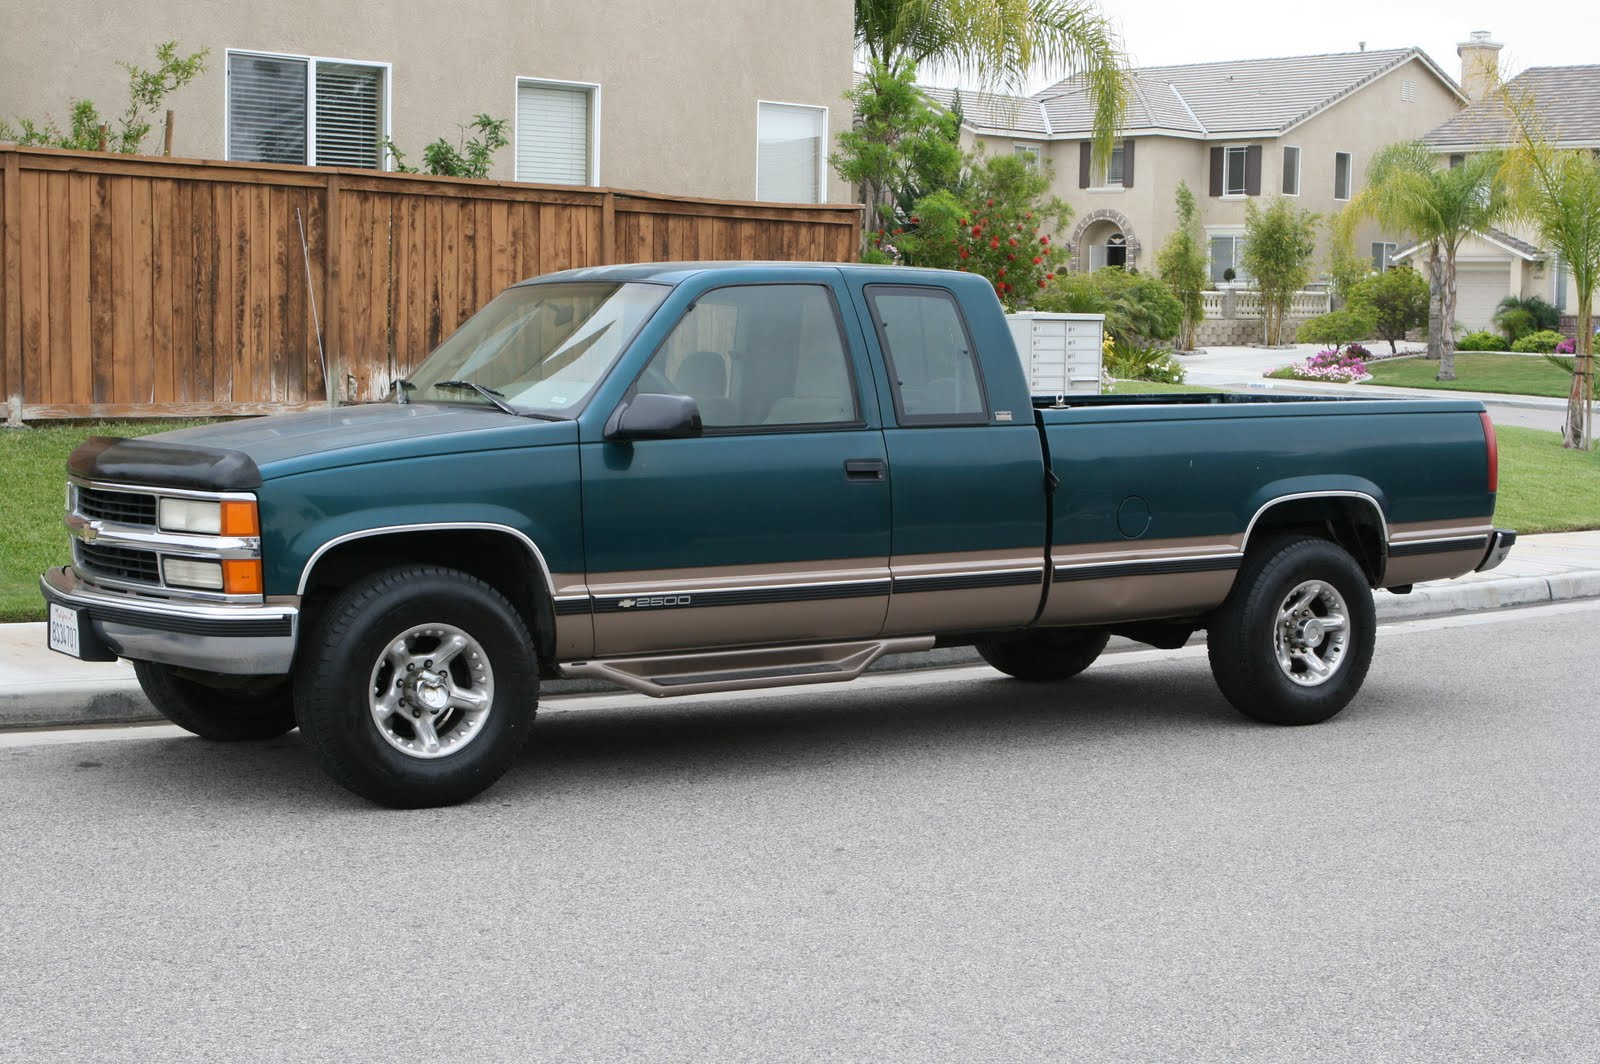 murrieta moving sale 1996 chevy silverado pick up truck 3 4 ton 2wd. Black Bedroom Furniture Sets. Home Design Ideas